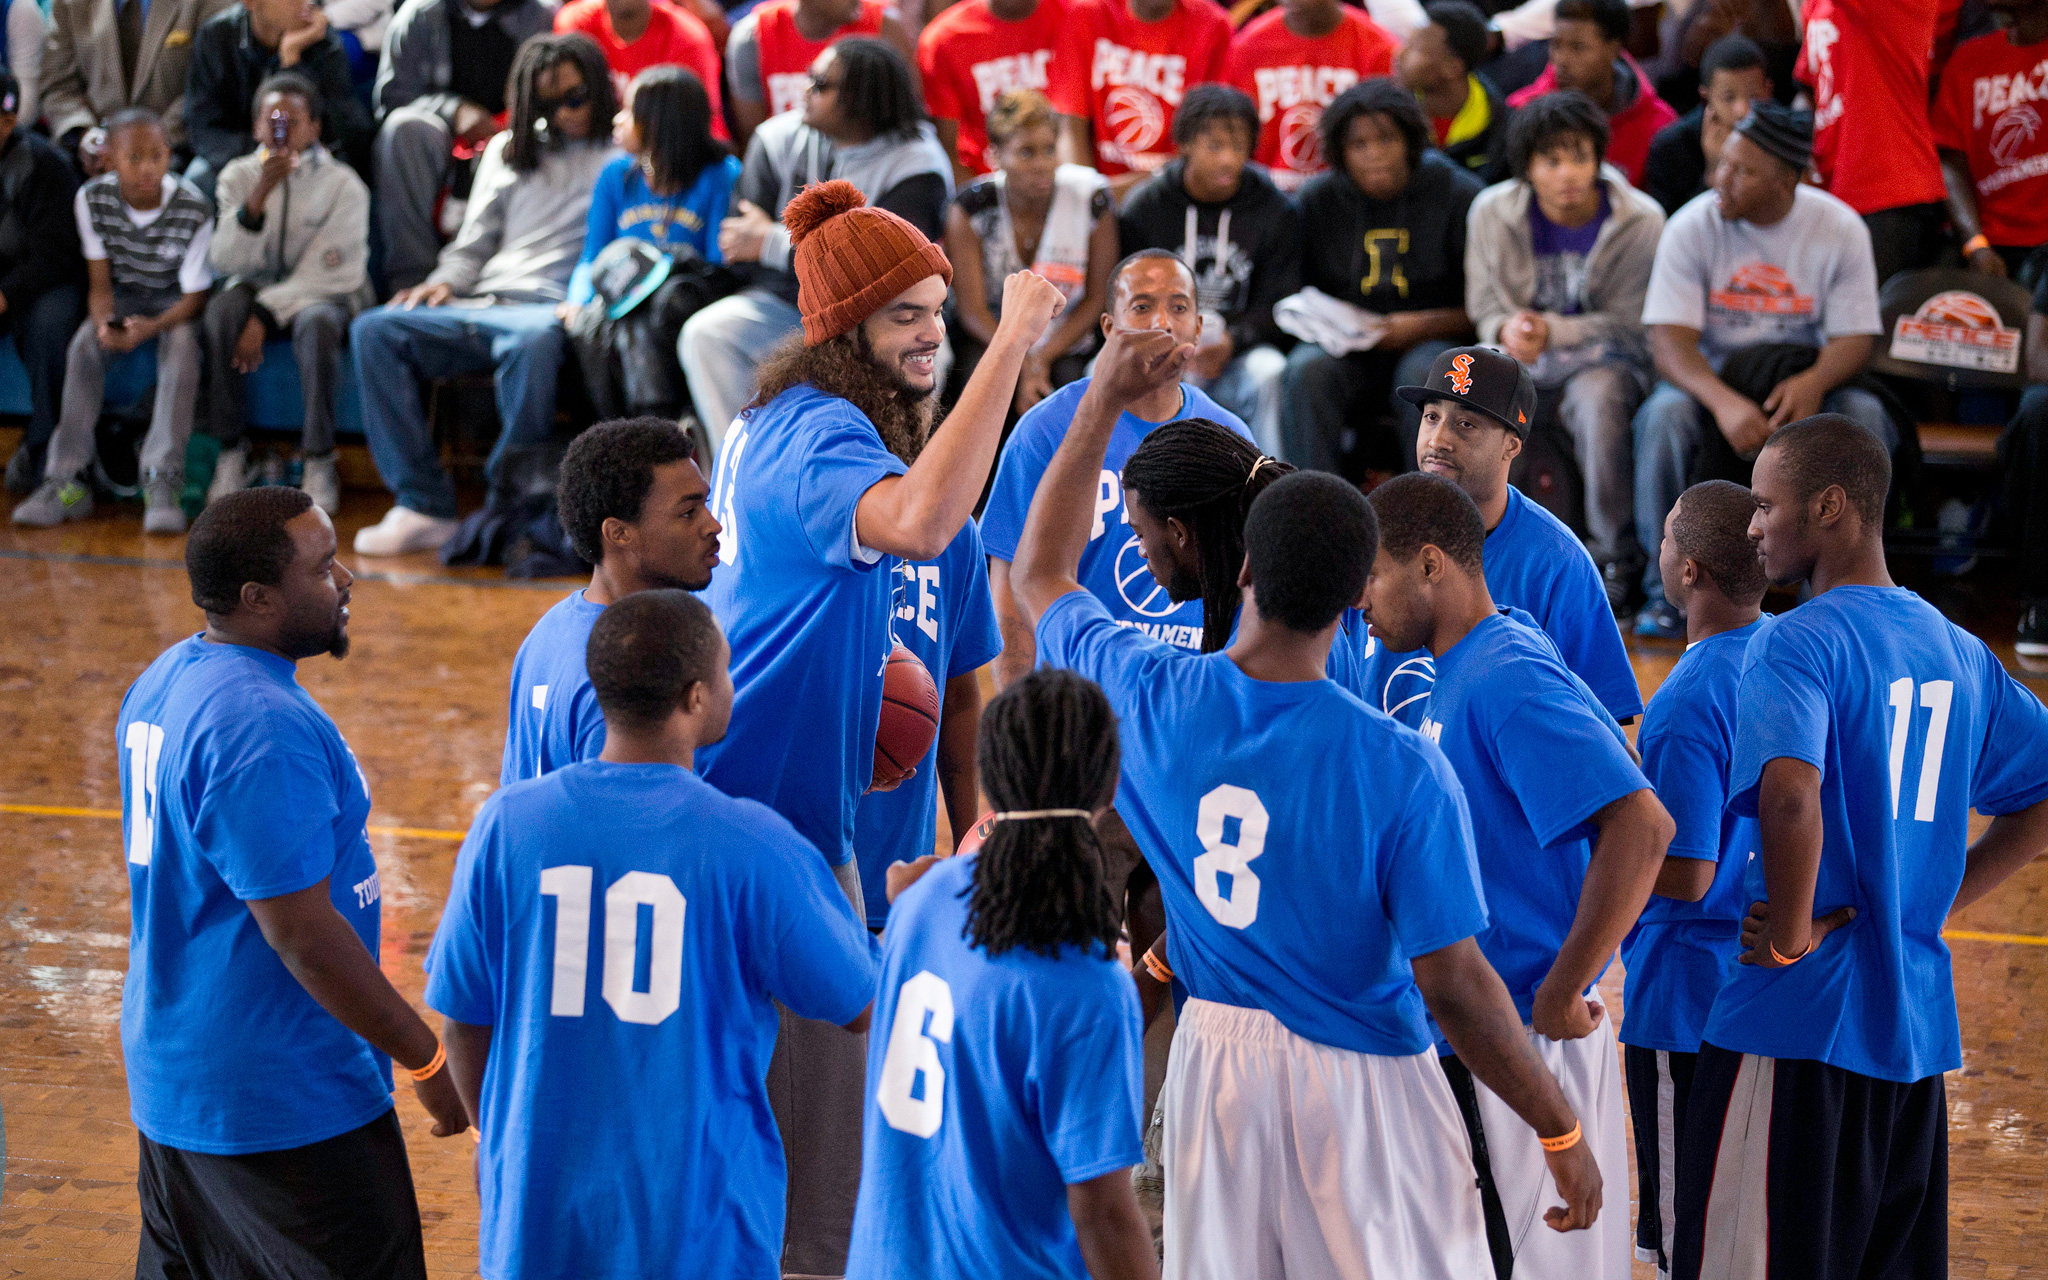 PEACE Basketball Tournament